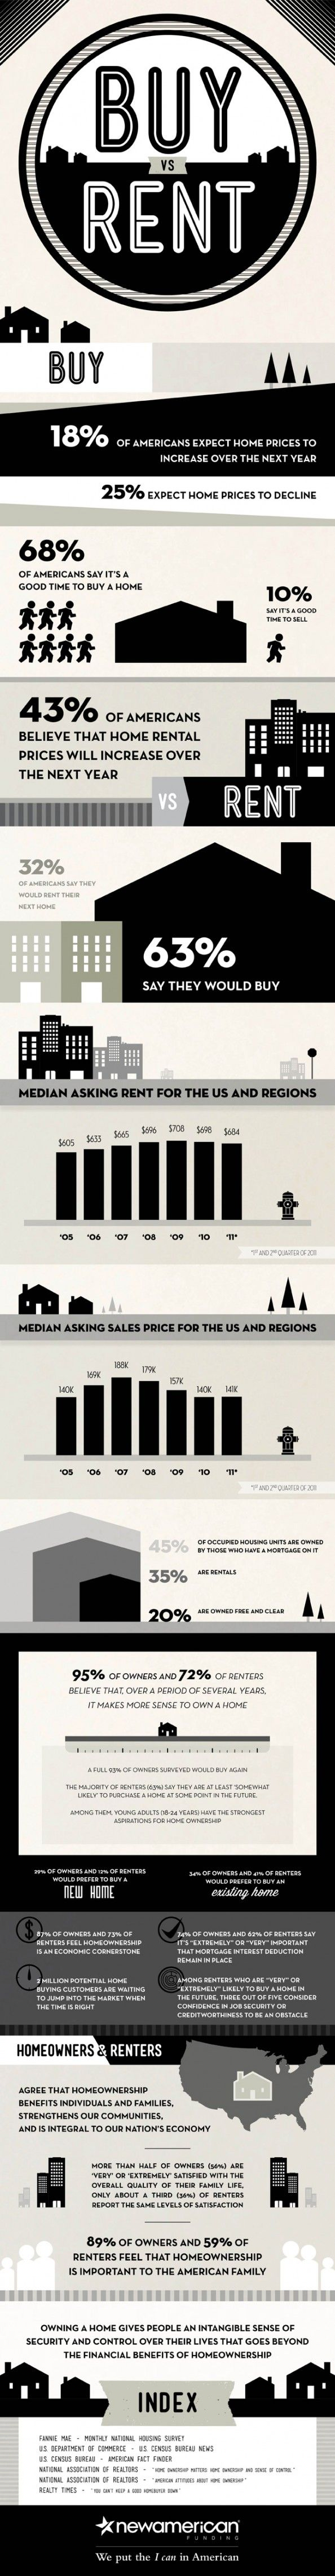 344 best Real Estate Infographics images on Pinterest | Infographic ...